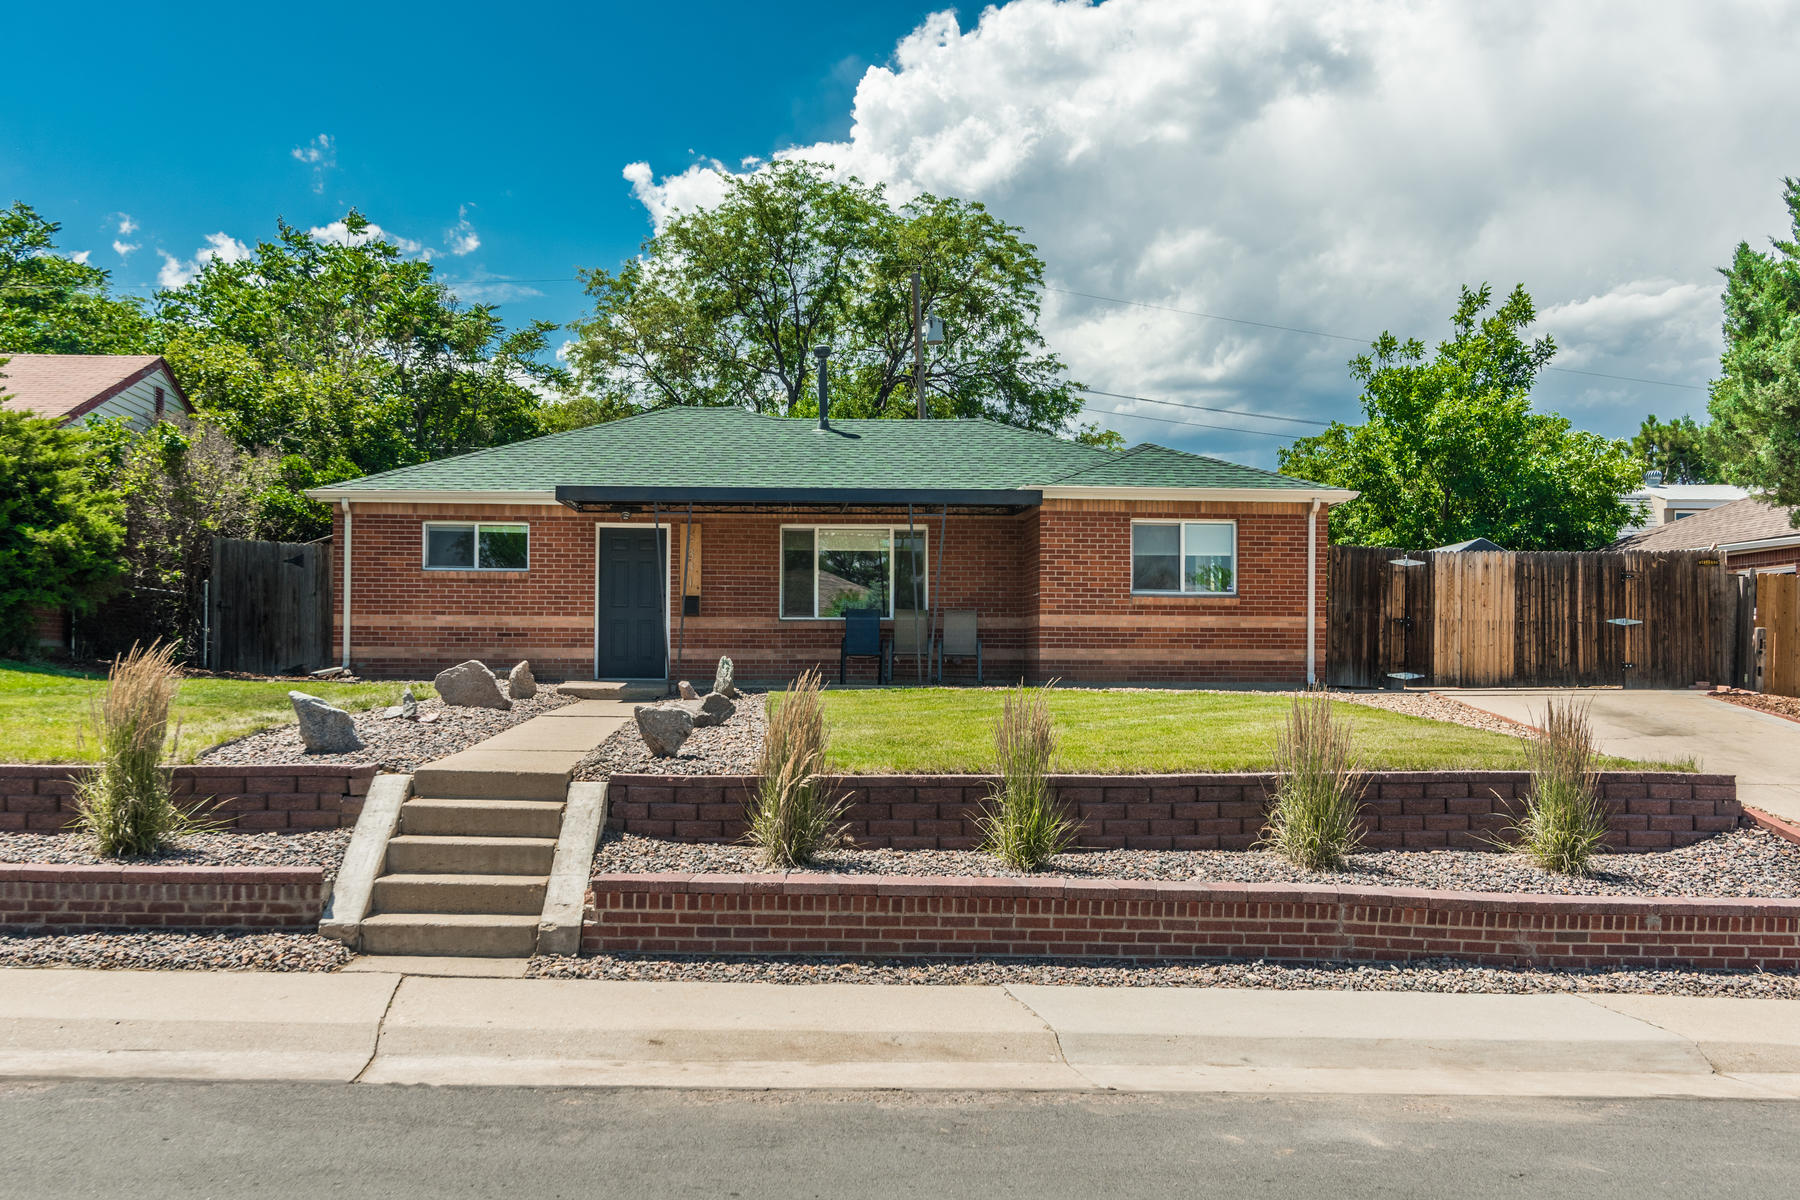 Single Family Homes for Sale at Recently Remodeled Ranch 9331 Harris Street, Thornton, Colorado 80229 United States